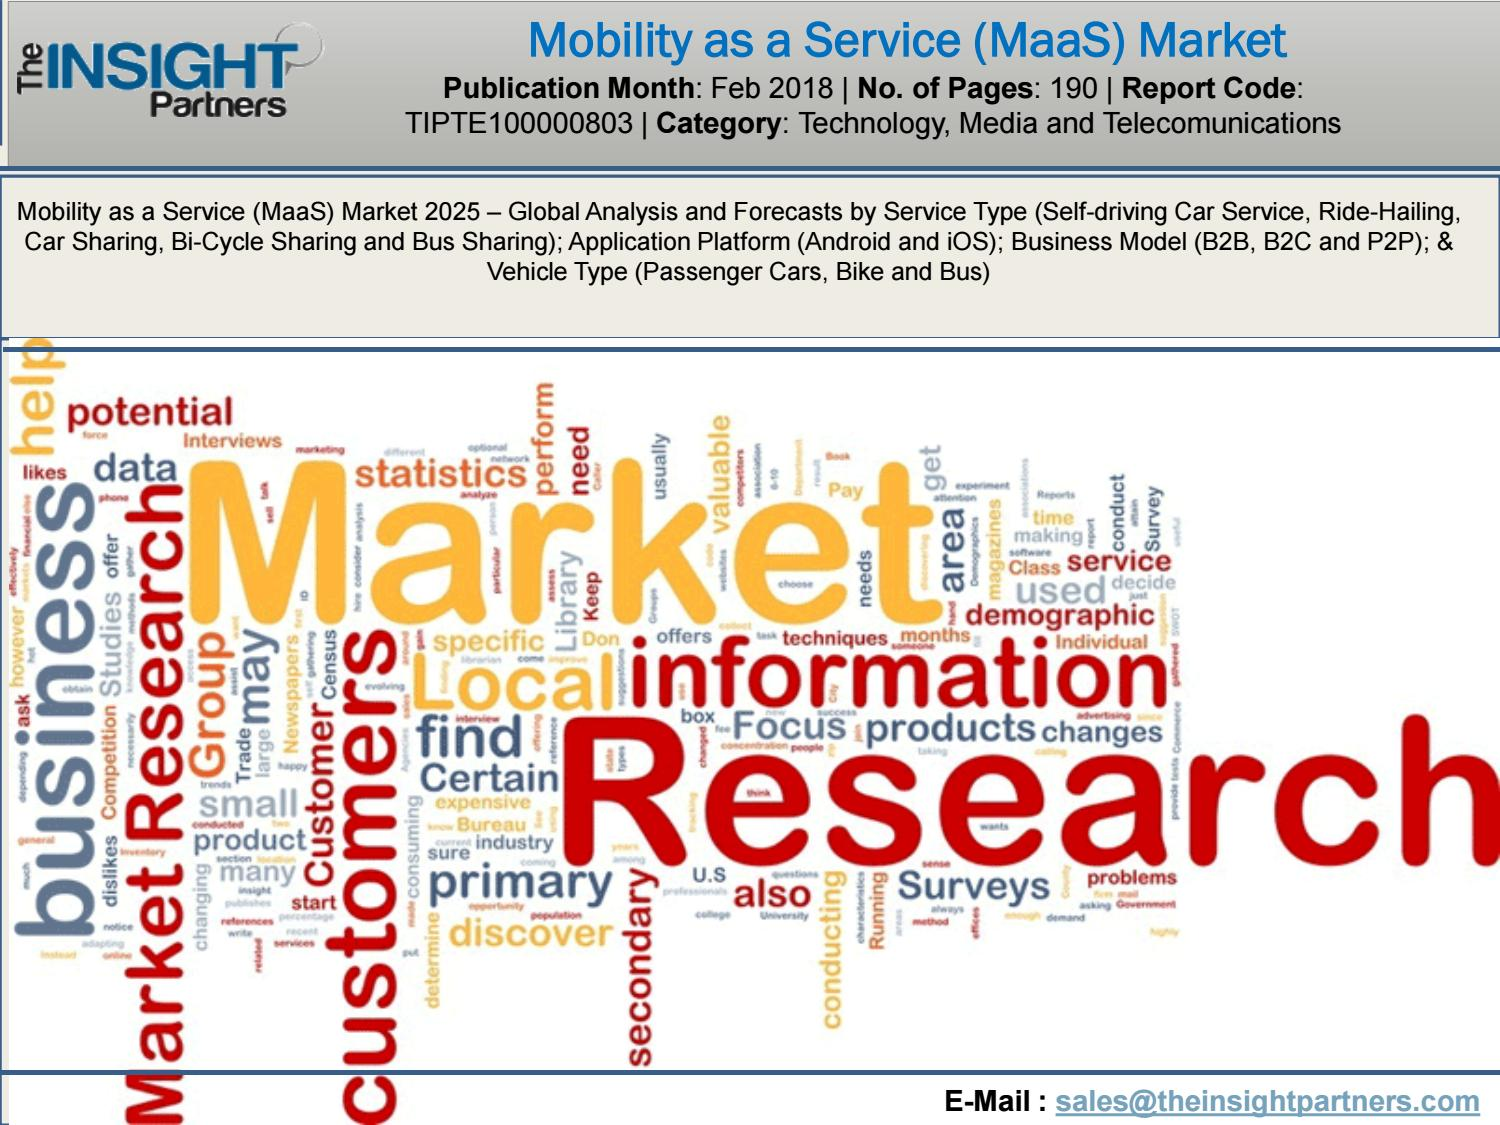 Mobility as a service (maas) market -Application